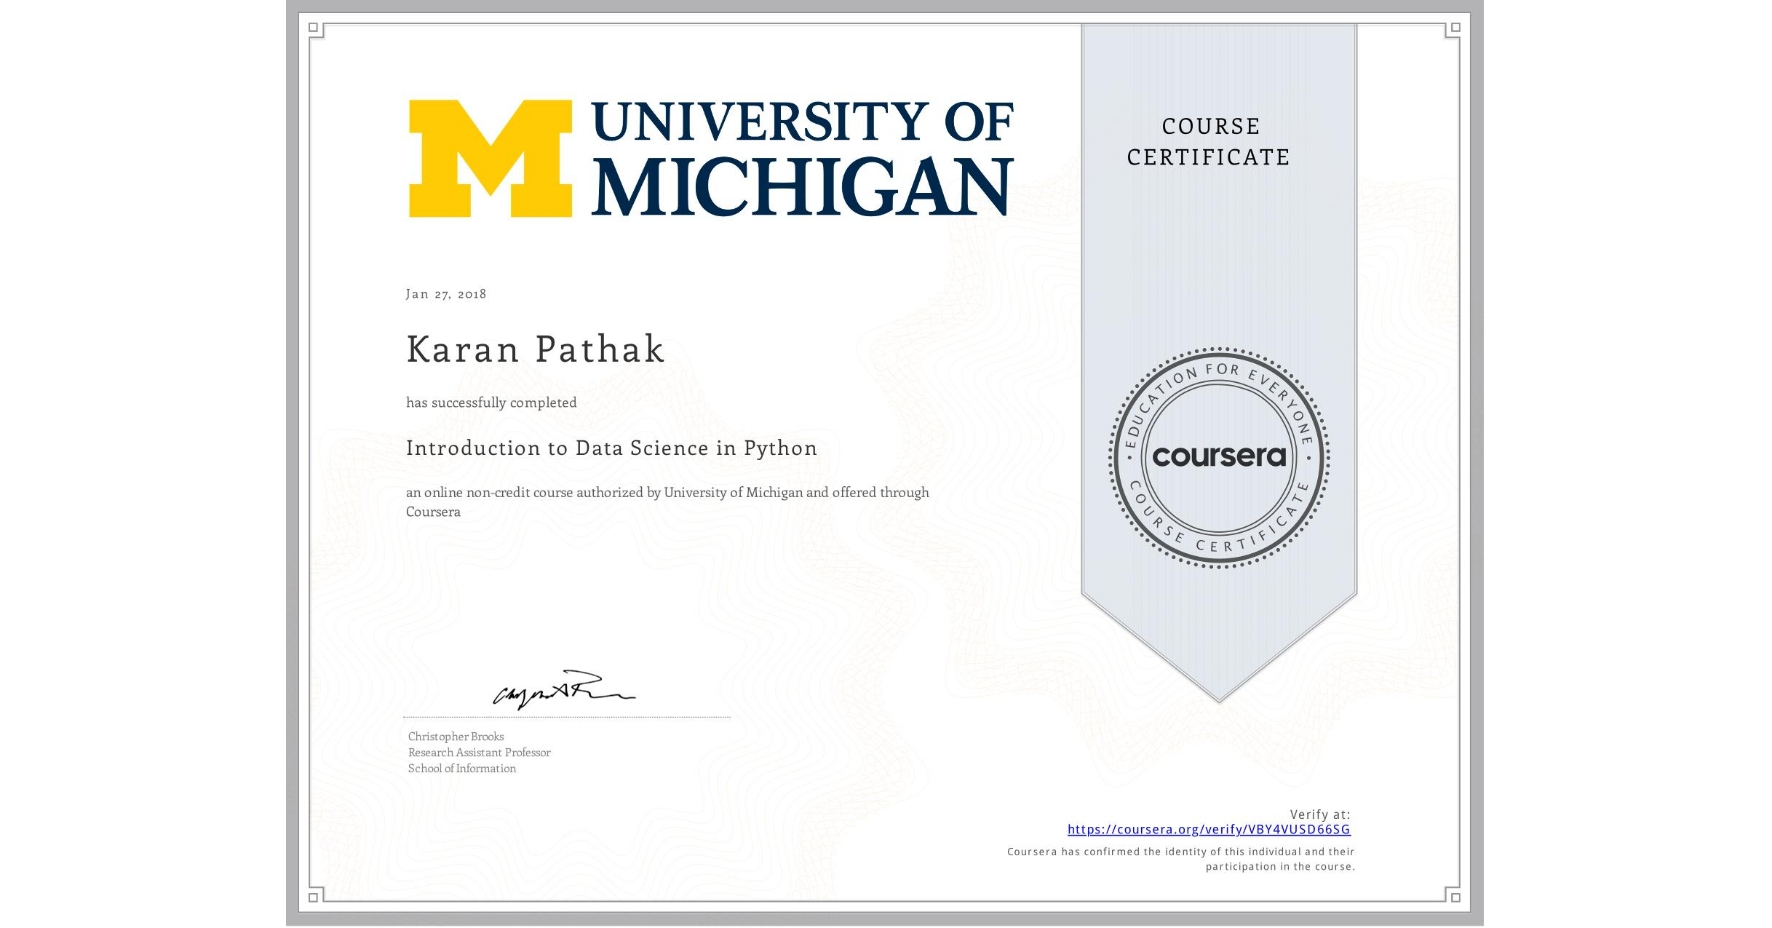 View certificate for Karan Pathak, Introduction to Data Science in Python, an online non-credit course authorized by University of Michigan and offered through Coursera